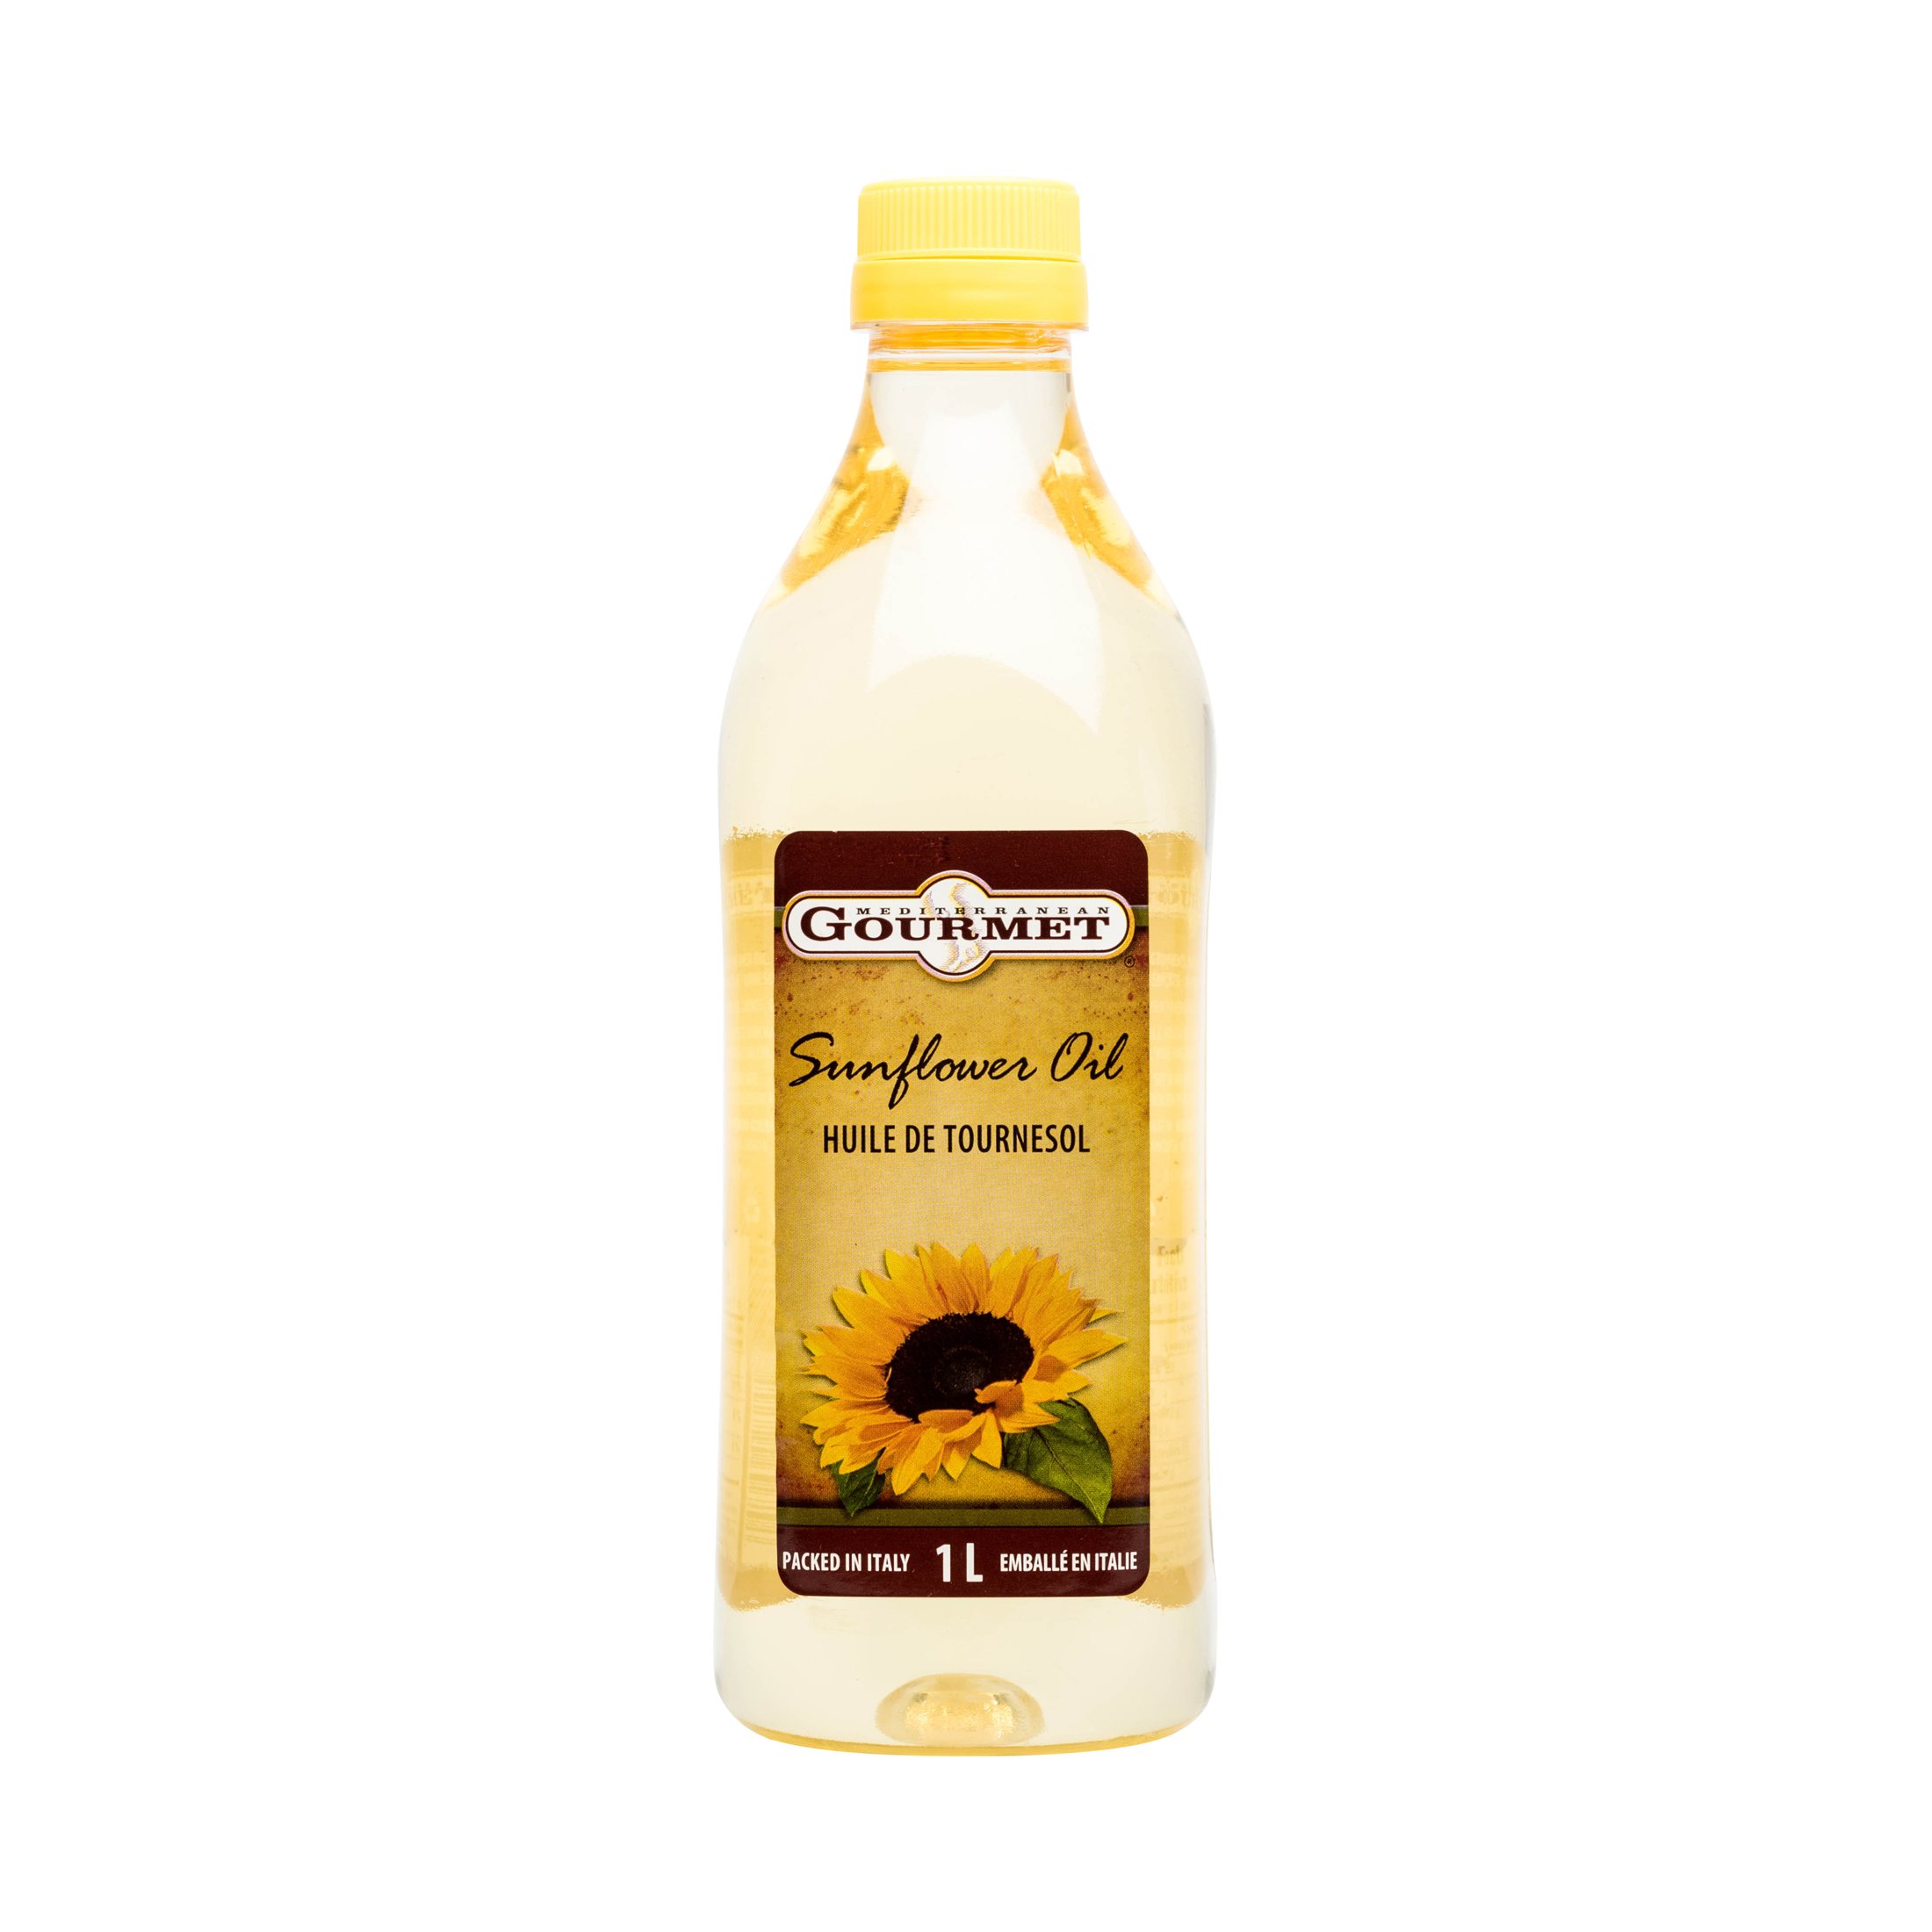 GOURMET SUNFLOWER OIL